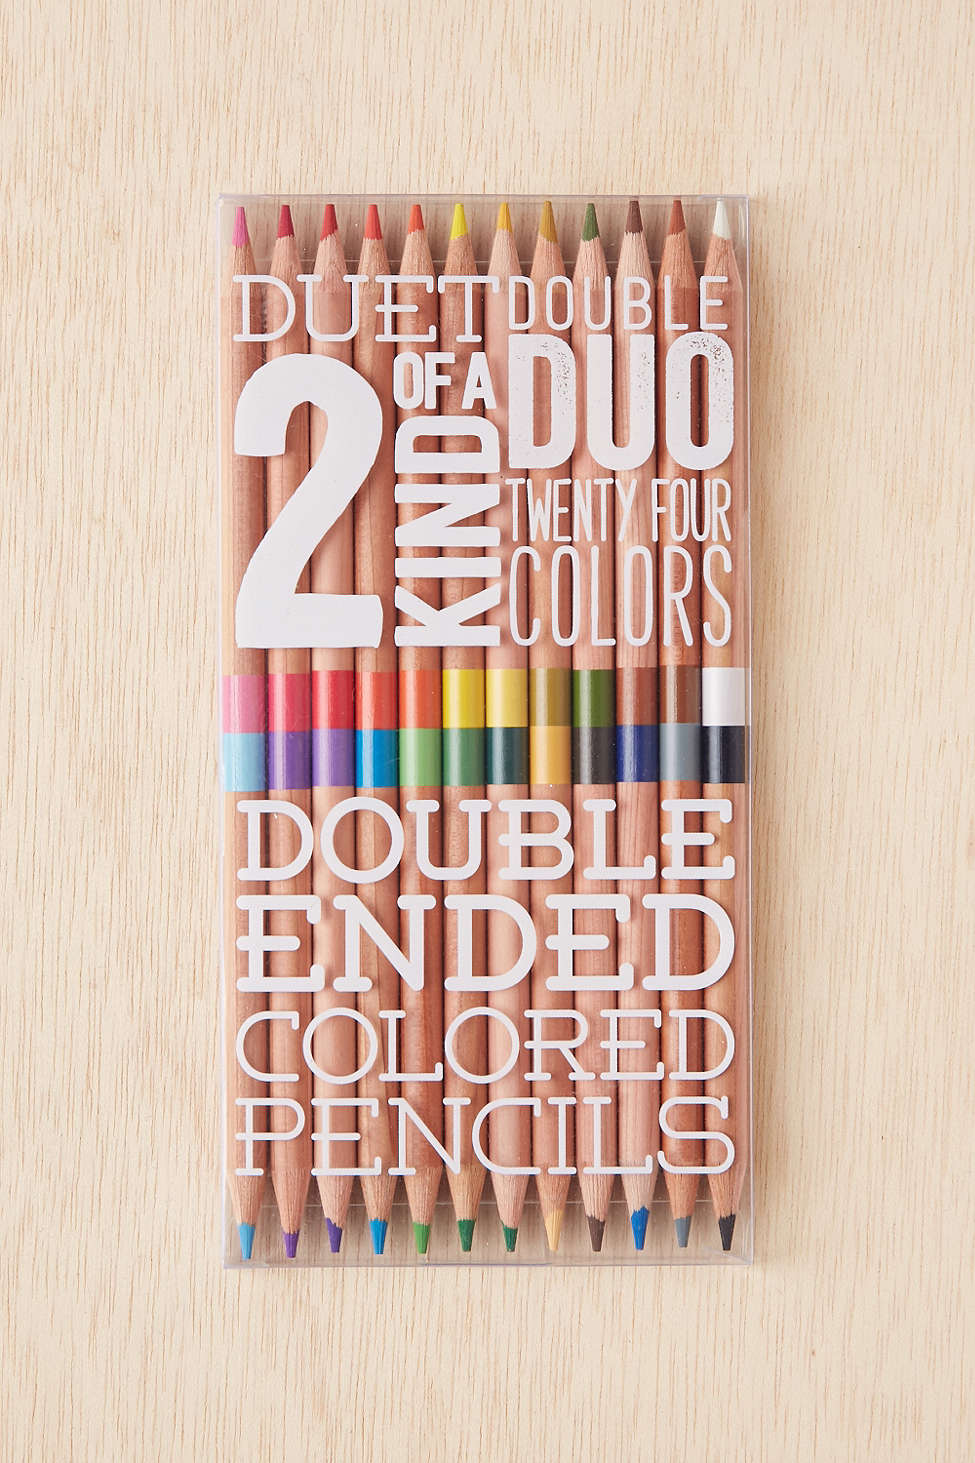 Double Ended Colored Pencils - Urban Outfitters.jpg